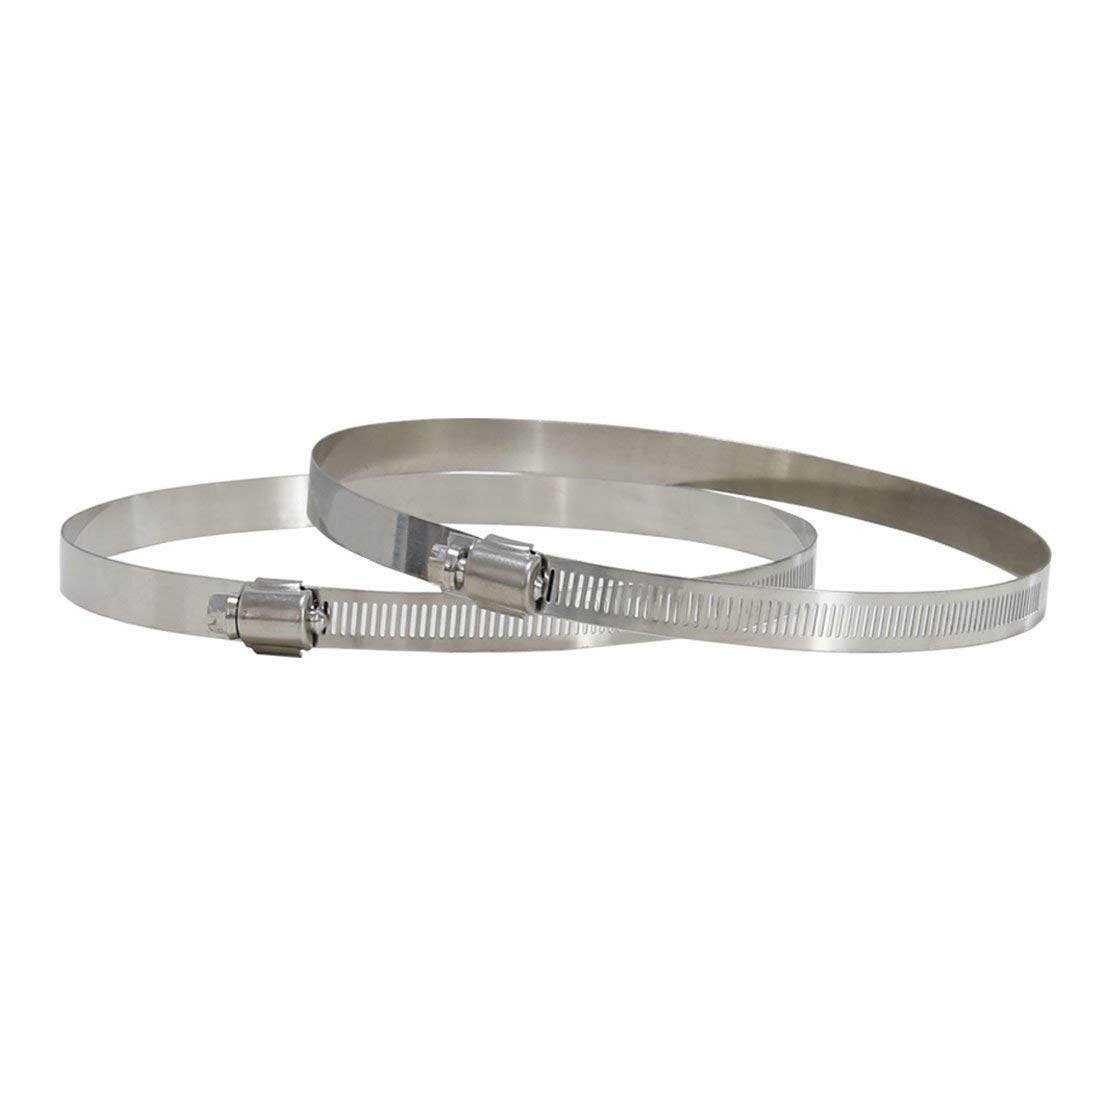 Pacific Technologies Stainless Steel Duct Clamps 7 Inch Pack of 2